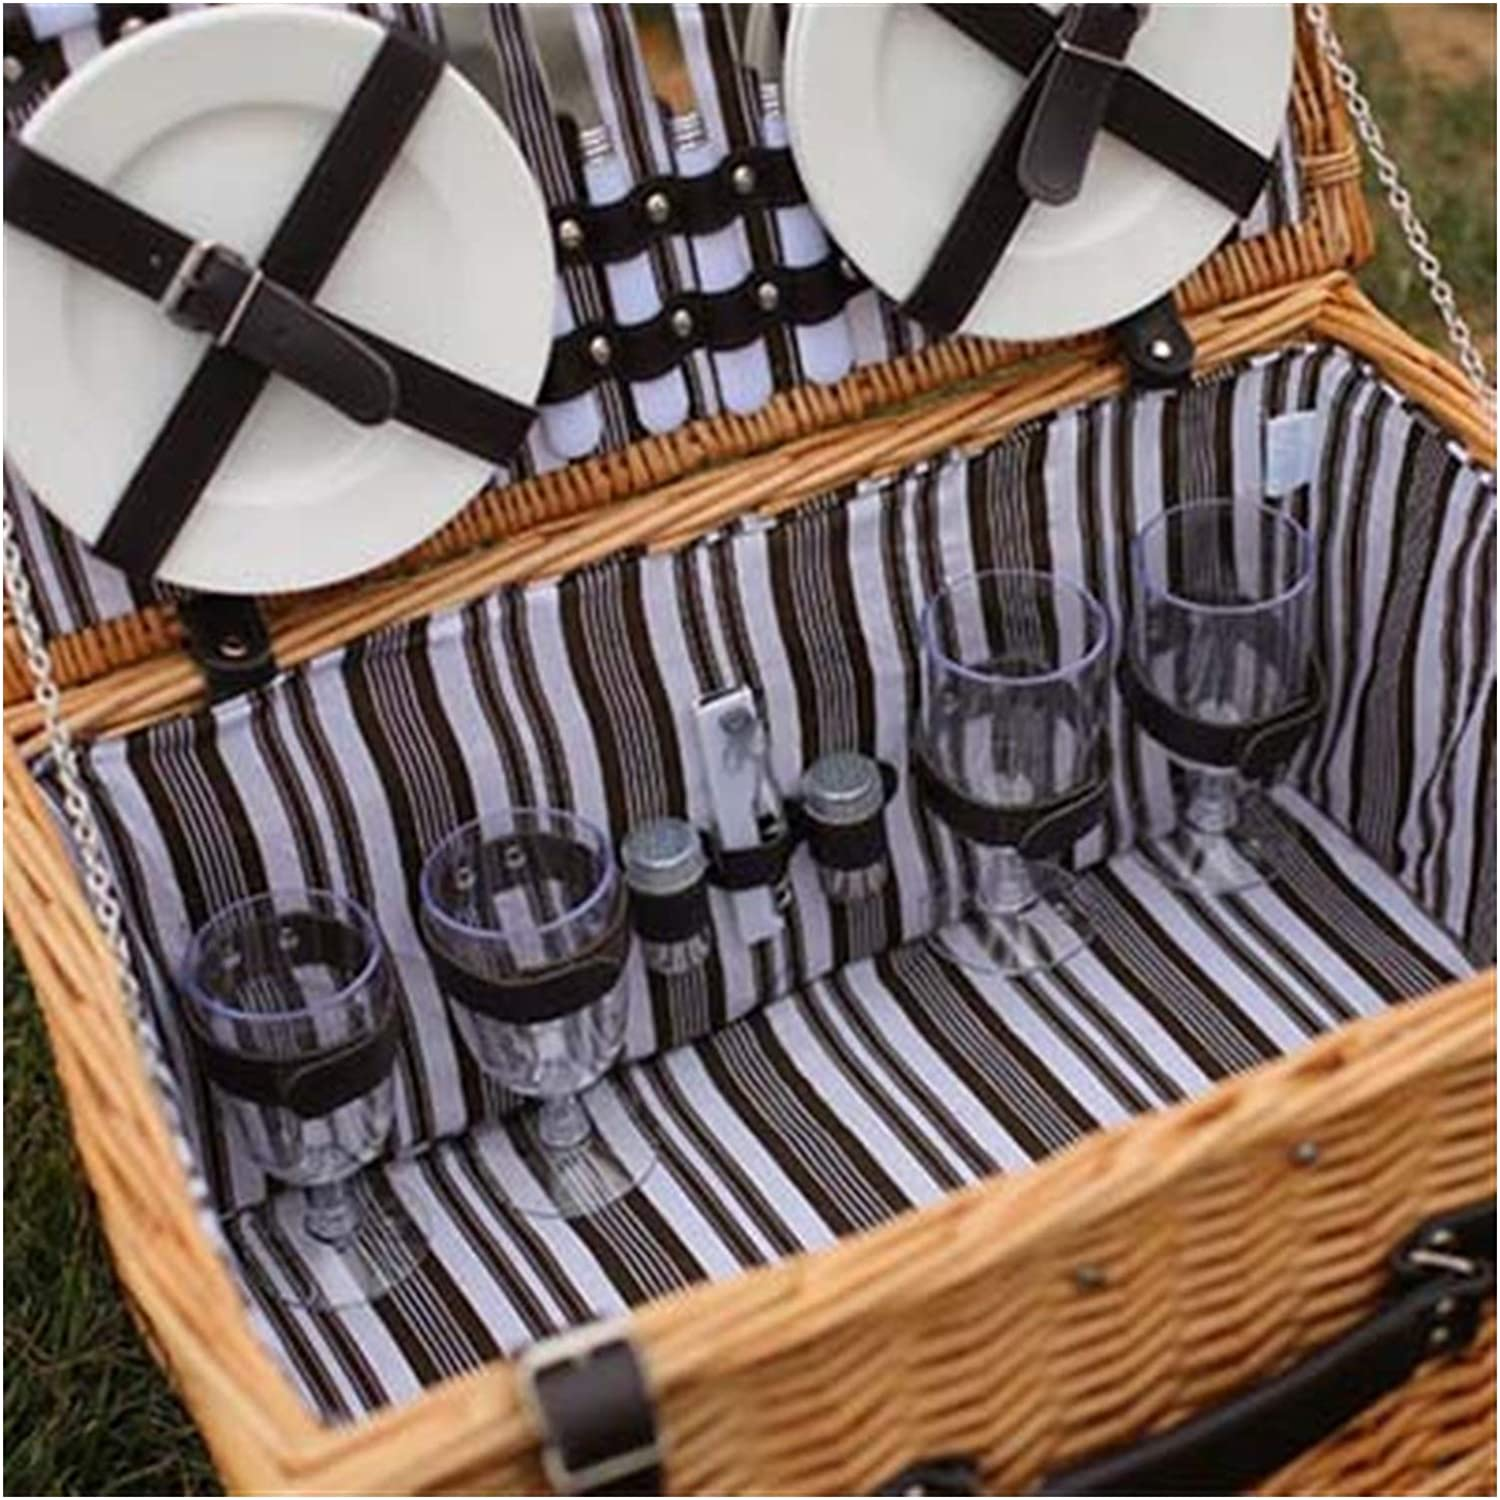 LXQS Multifunctional Picnic 40% OFF Cheap outlet Sale Basket Willow Storage Outdoor